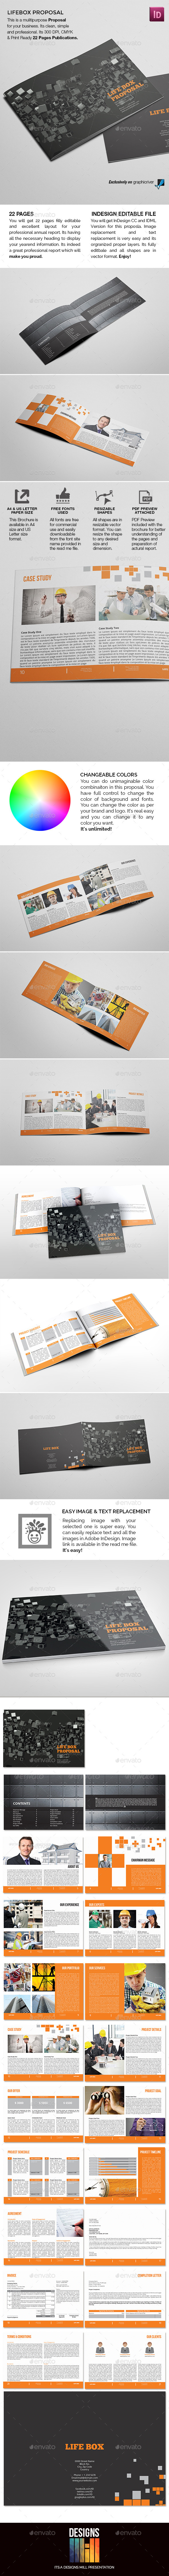 Lifebox Landscape Proposal  - Proposals & Invoices Stationery